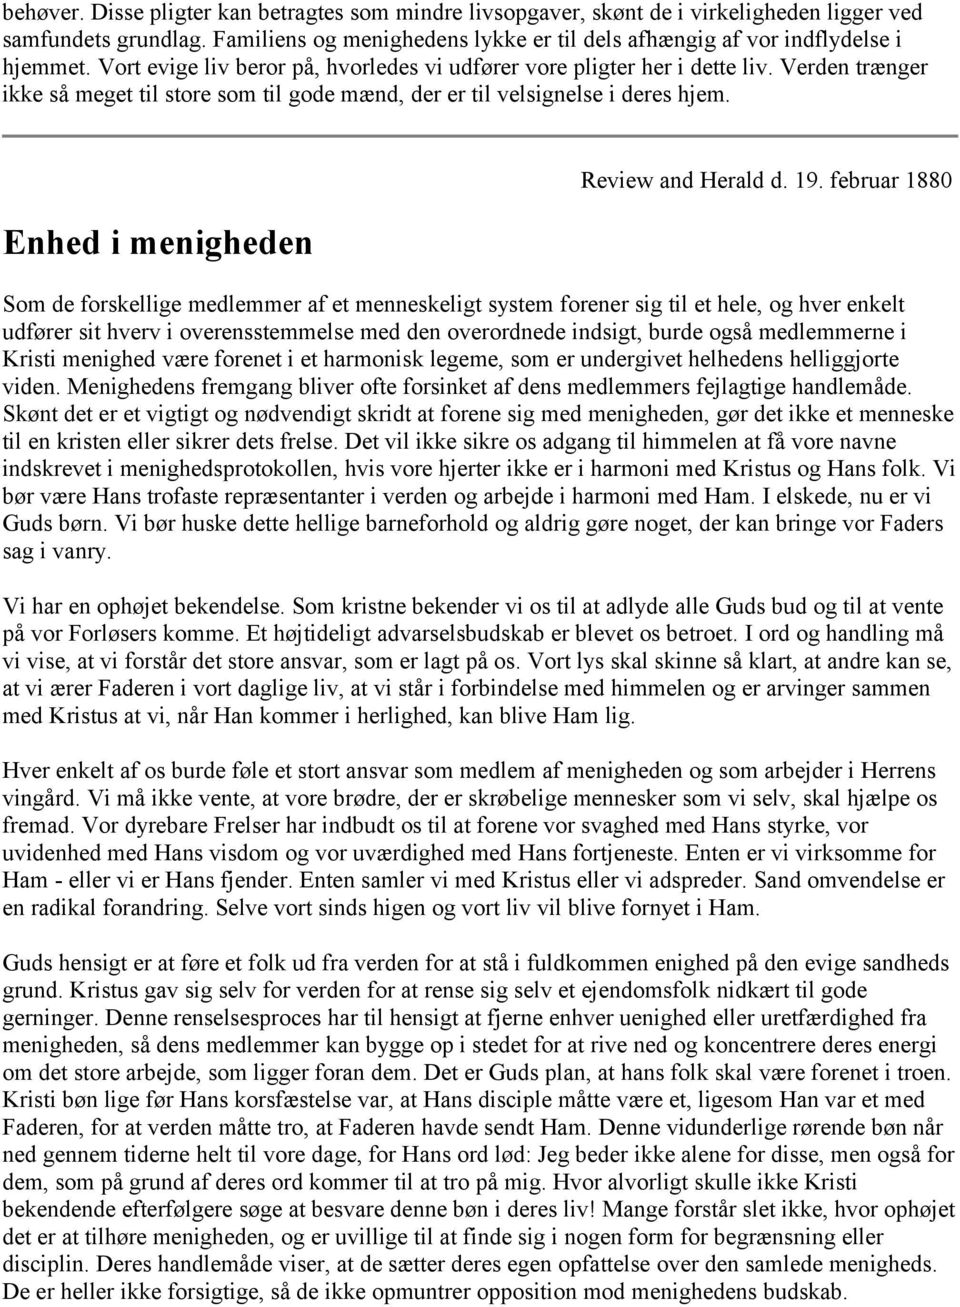 Enhed i menigheden Review and Herald d. 19.